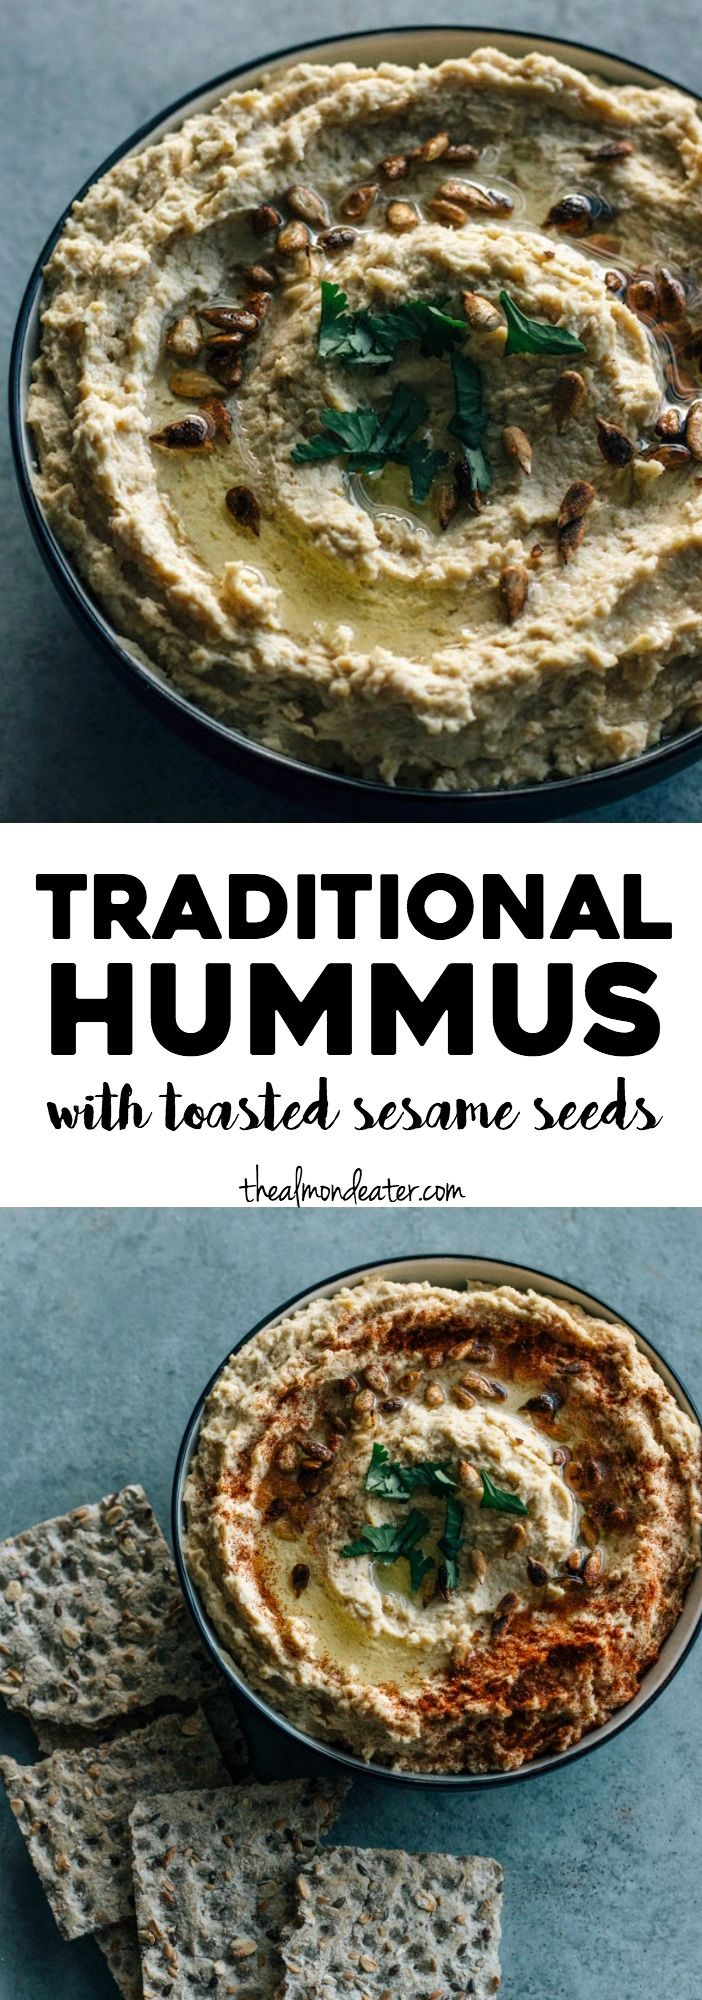 Traditional Hummus with Toasted Sesame Seeds | Recipe | Best Vegan Recipes! | Hummus, Hummus ...